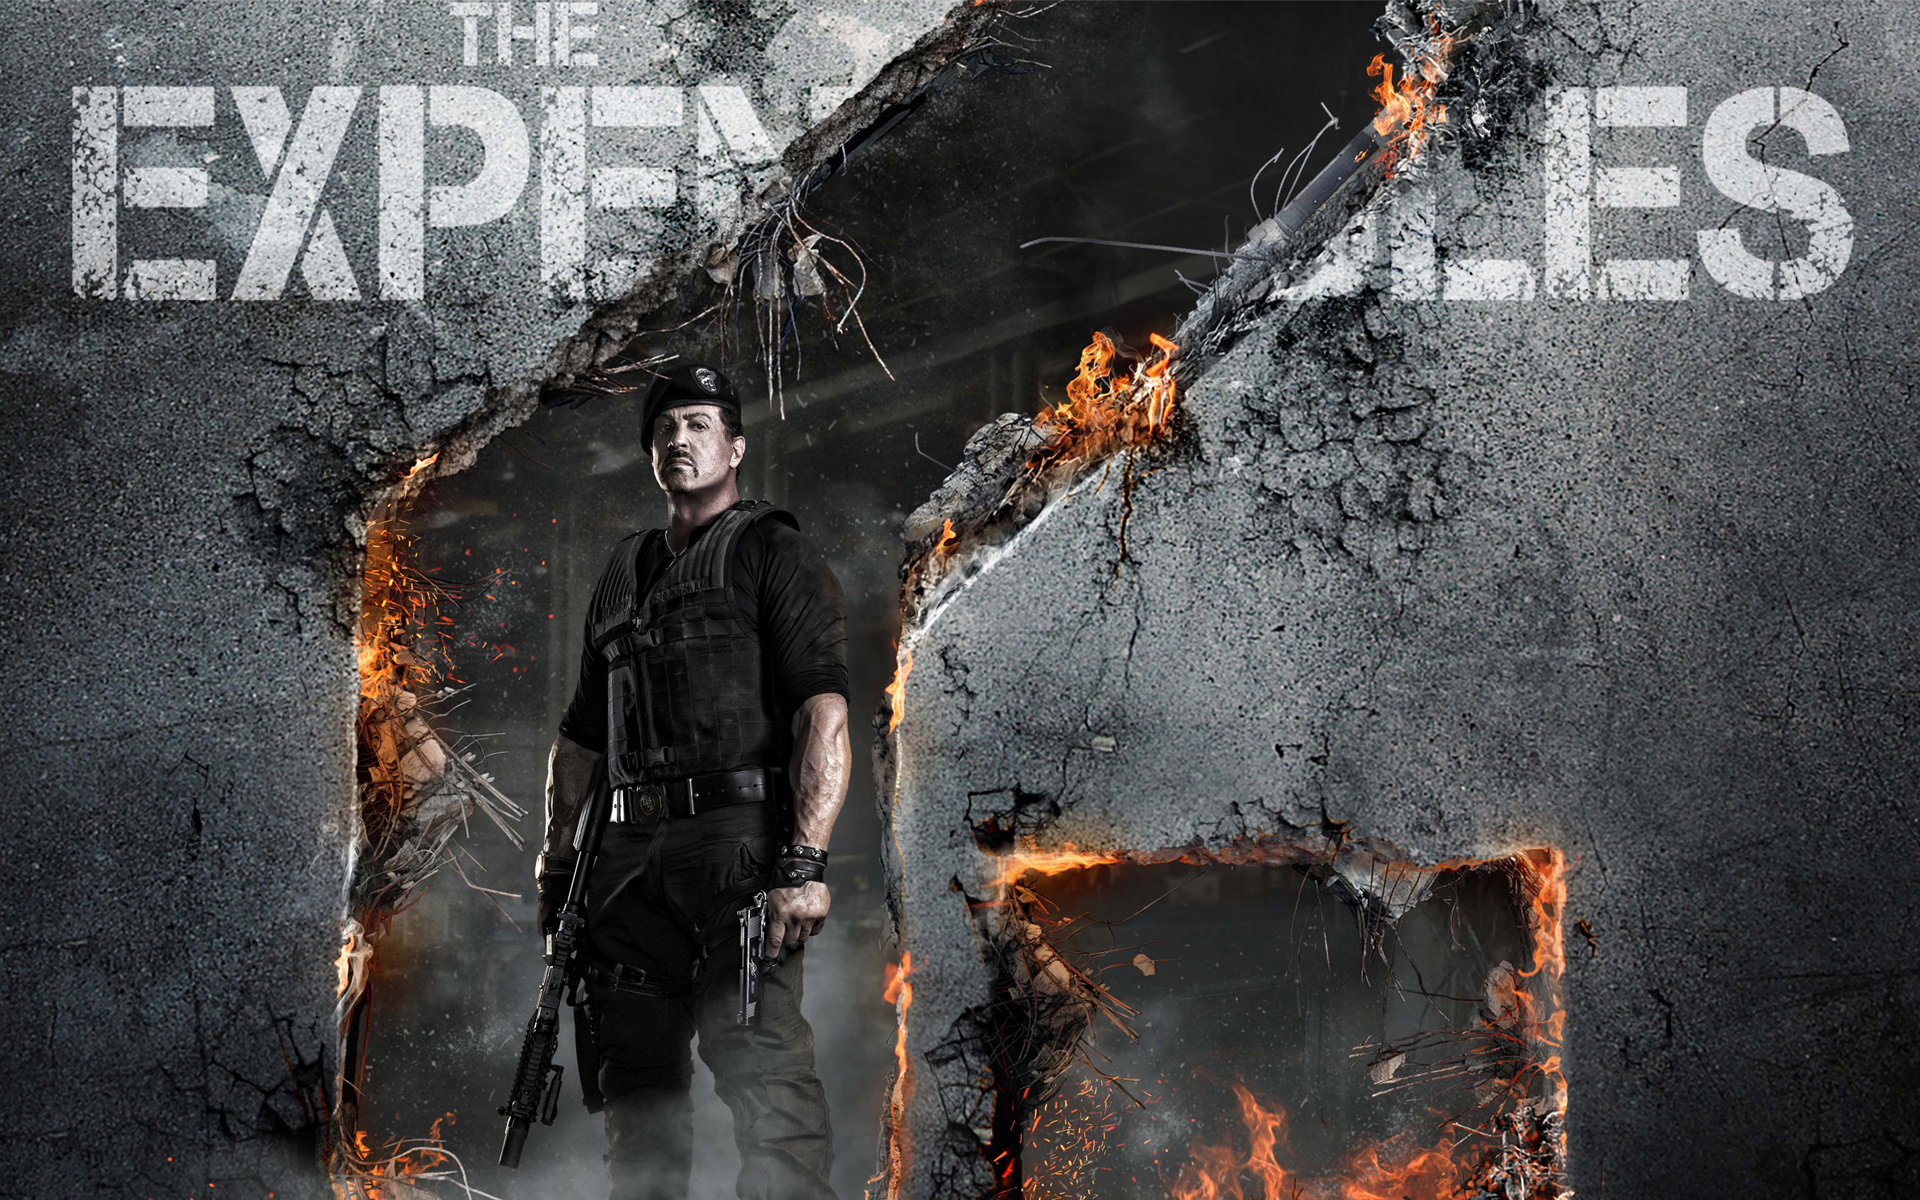 expendables 2 sylvester stallone #4161288, 1920x1200 | all for desktop